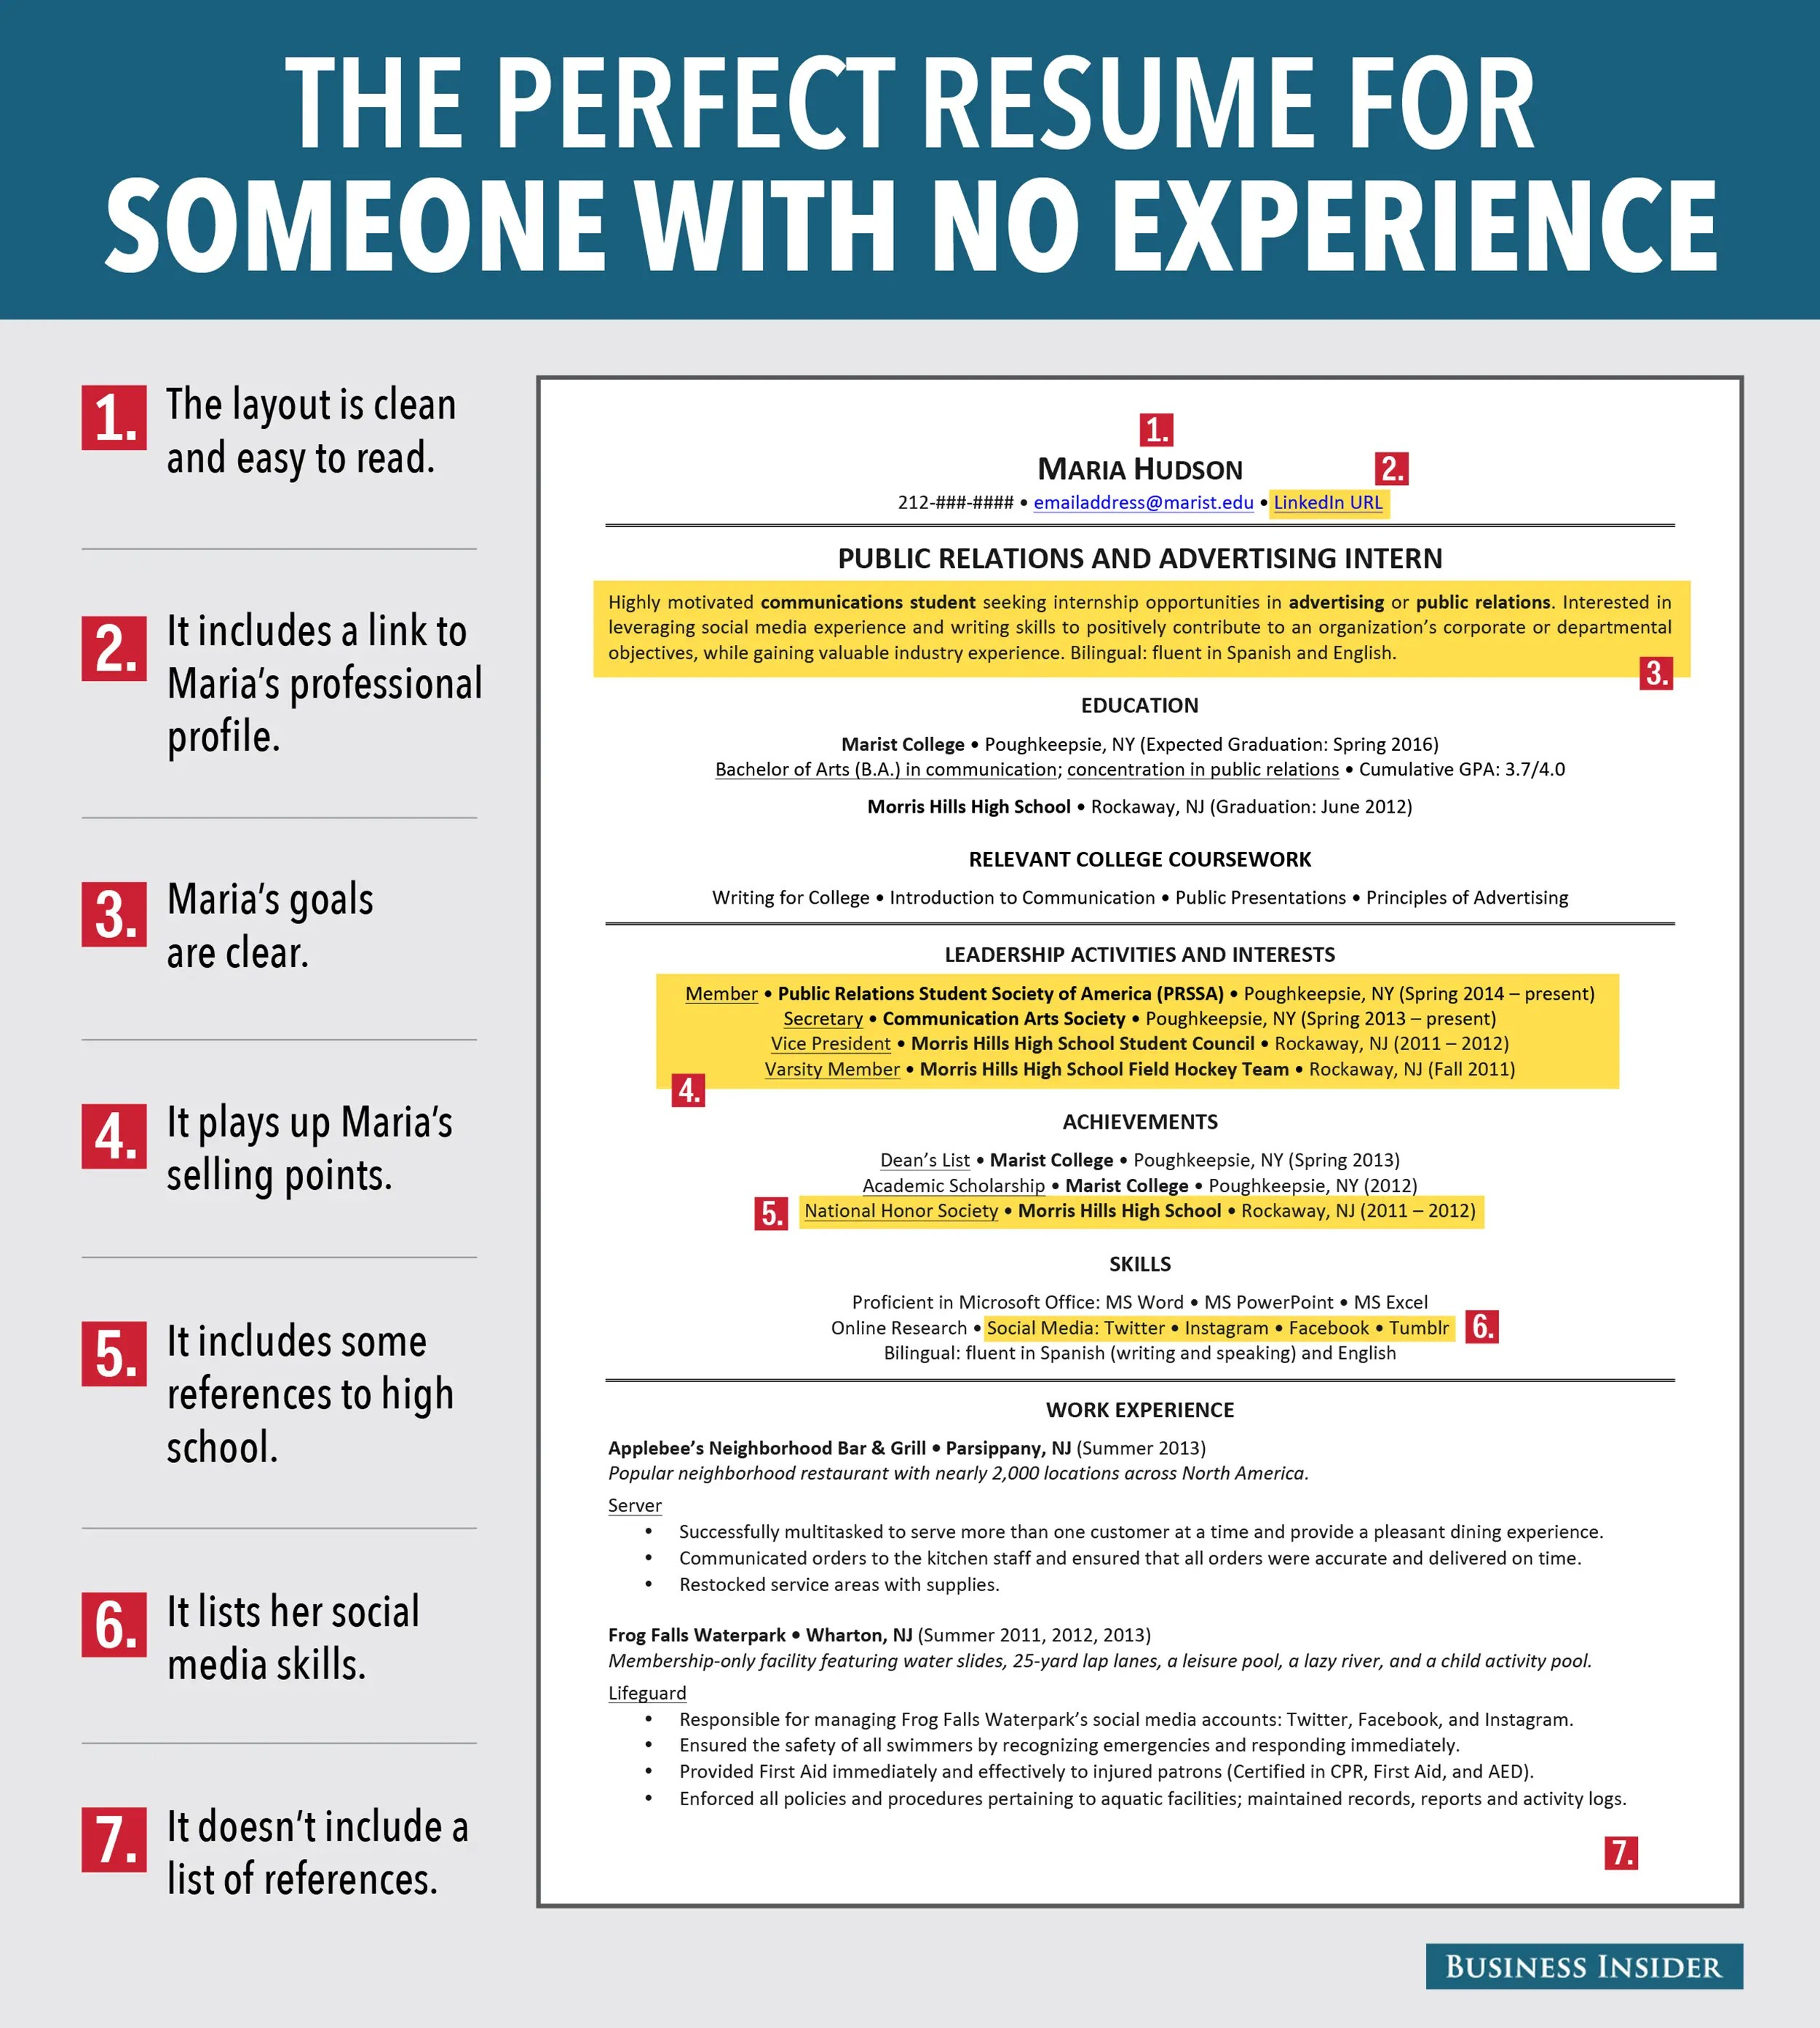 Example Of Resume With Working Experience 7 Reasons This Is An Excellent Resume For Someone With No